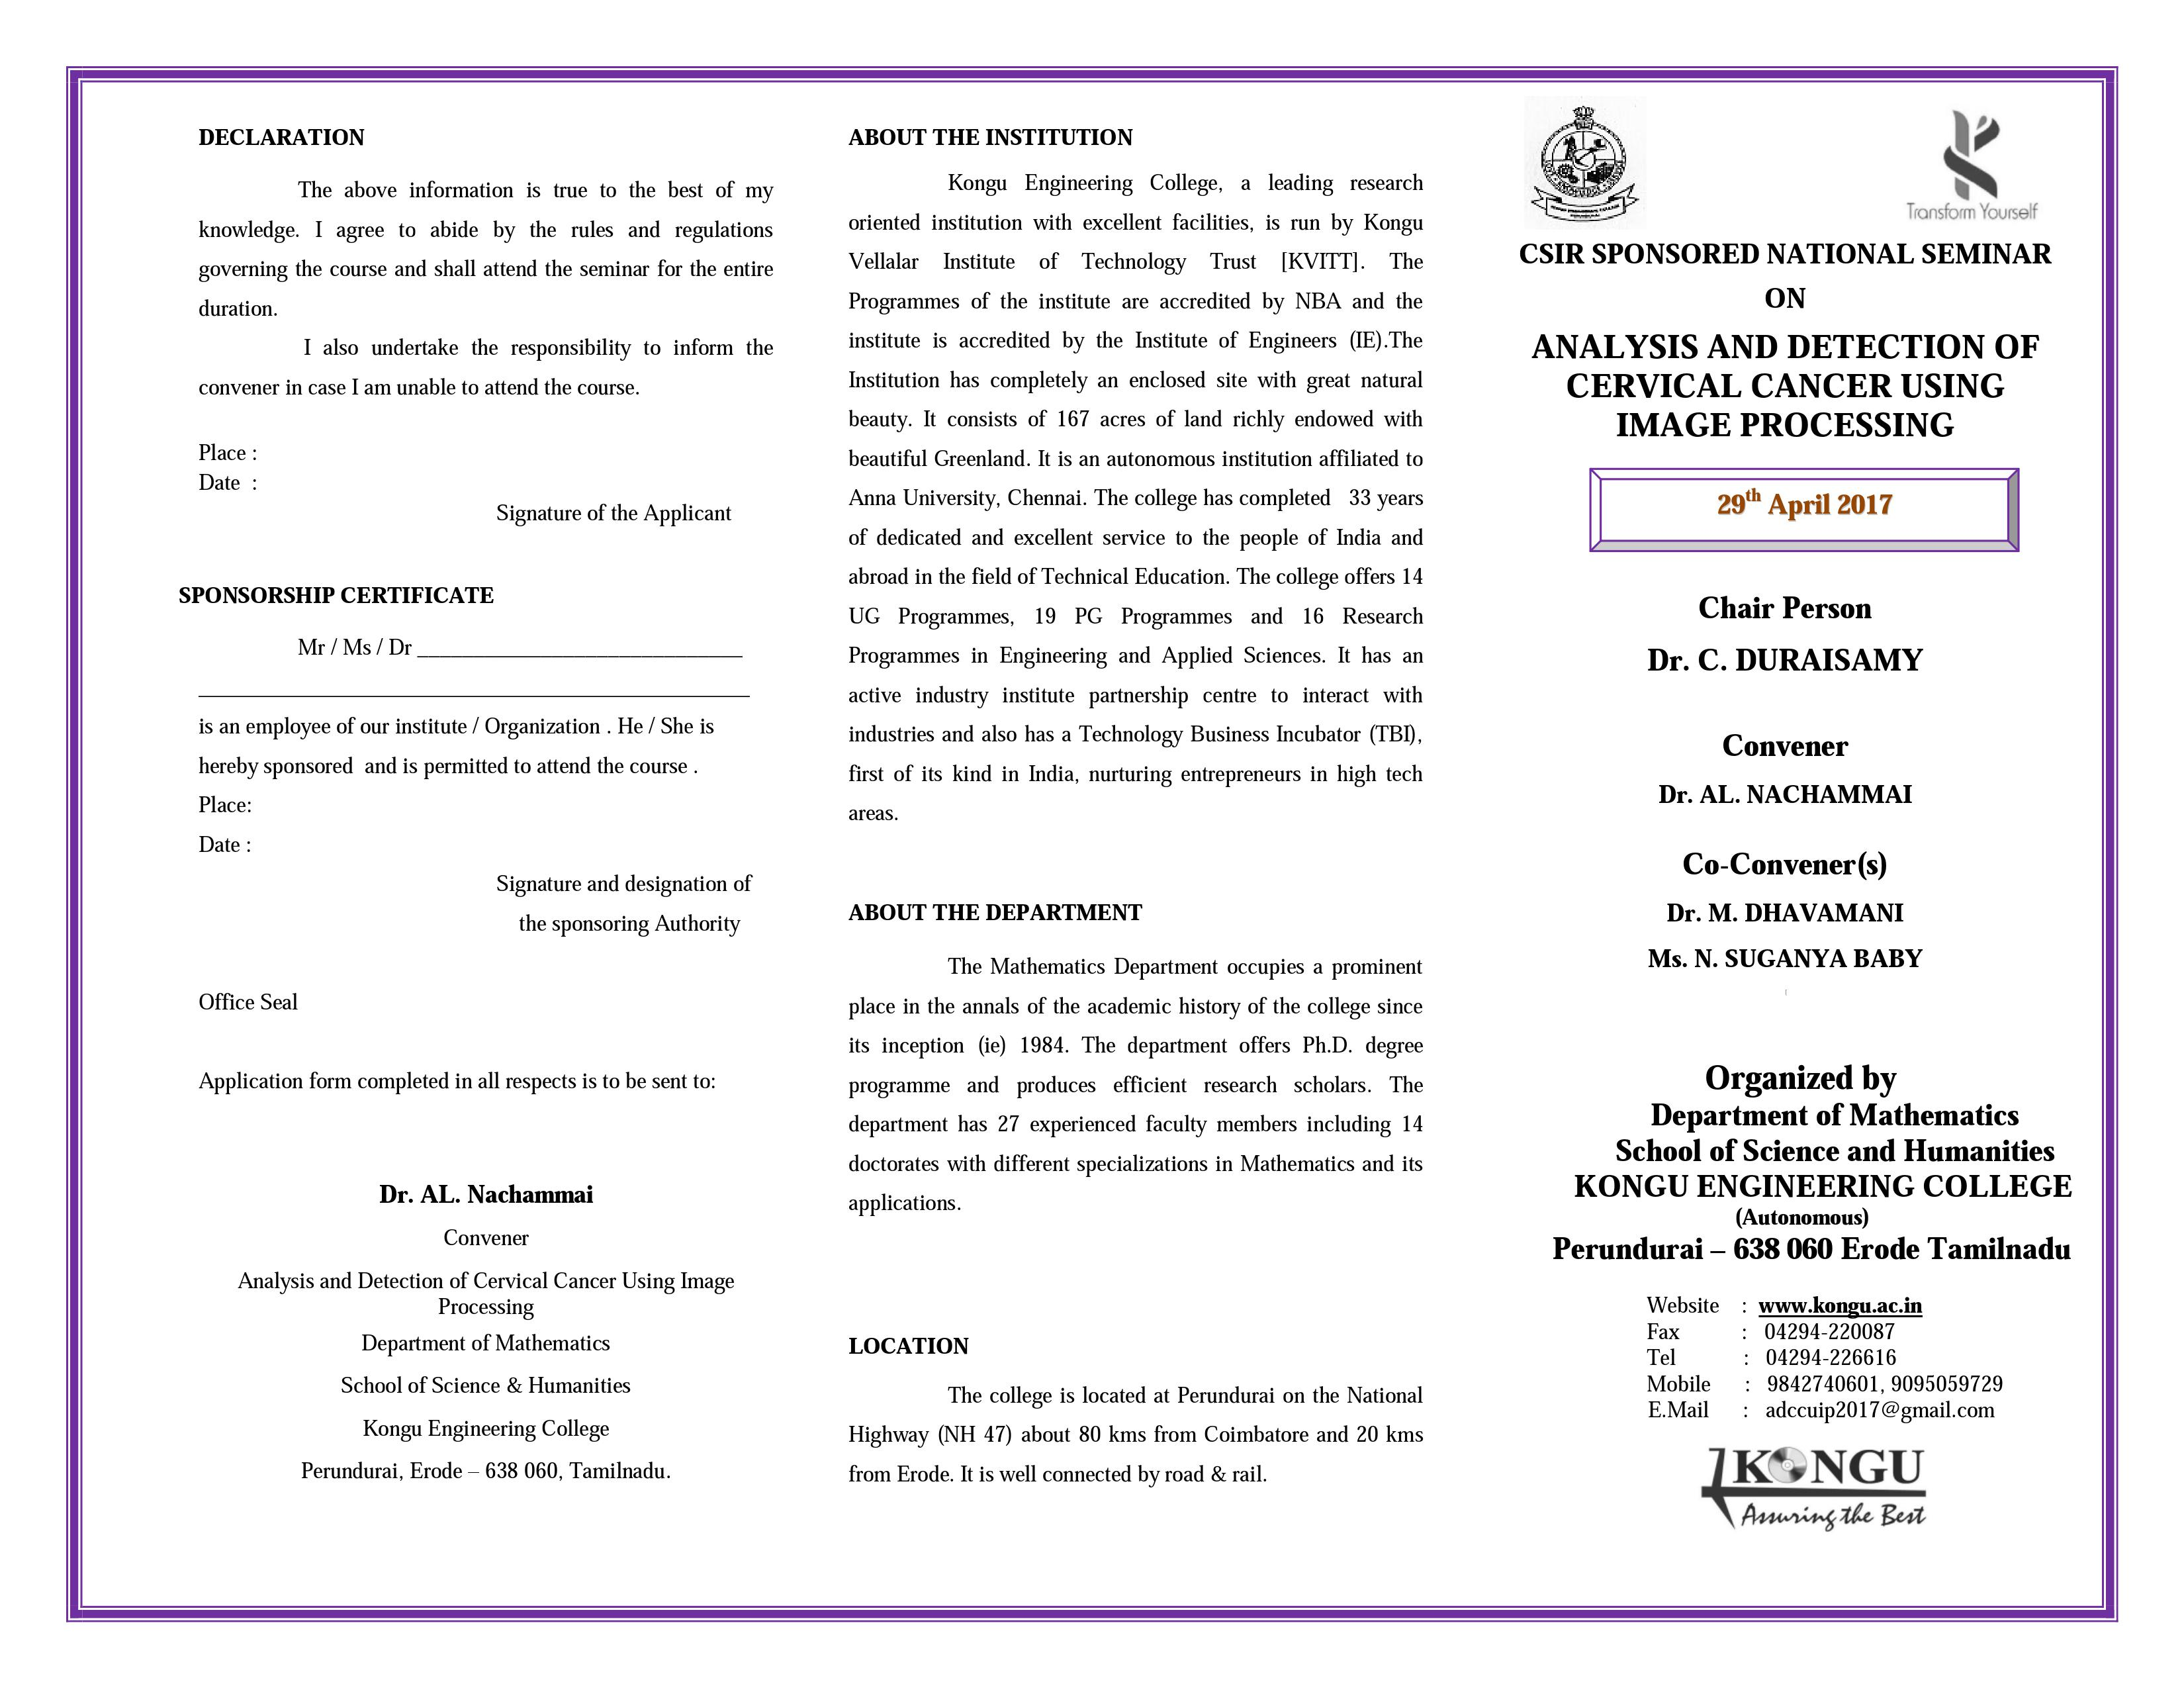 National Seminar on Analysis and Detection of Cervical Cancer Using Image Processing